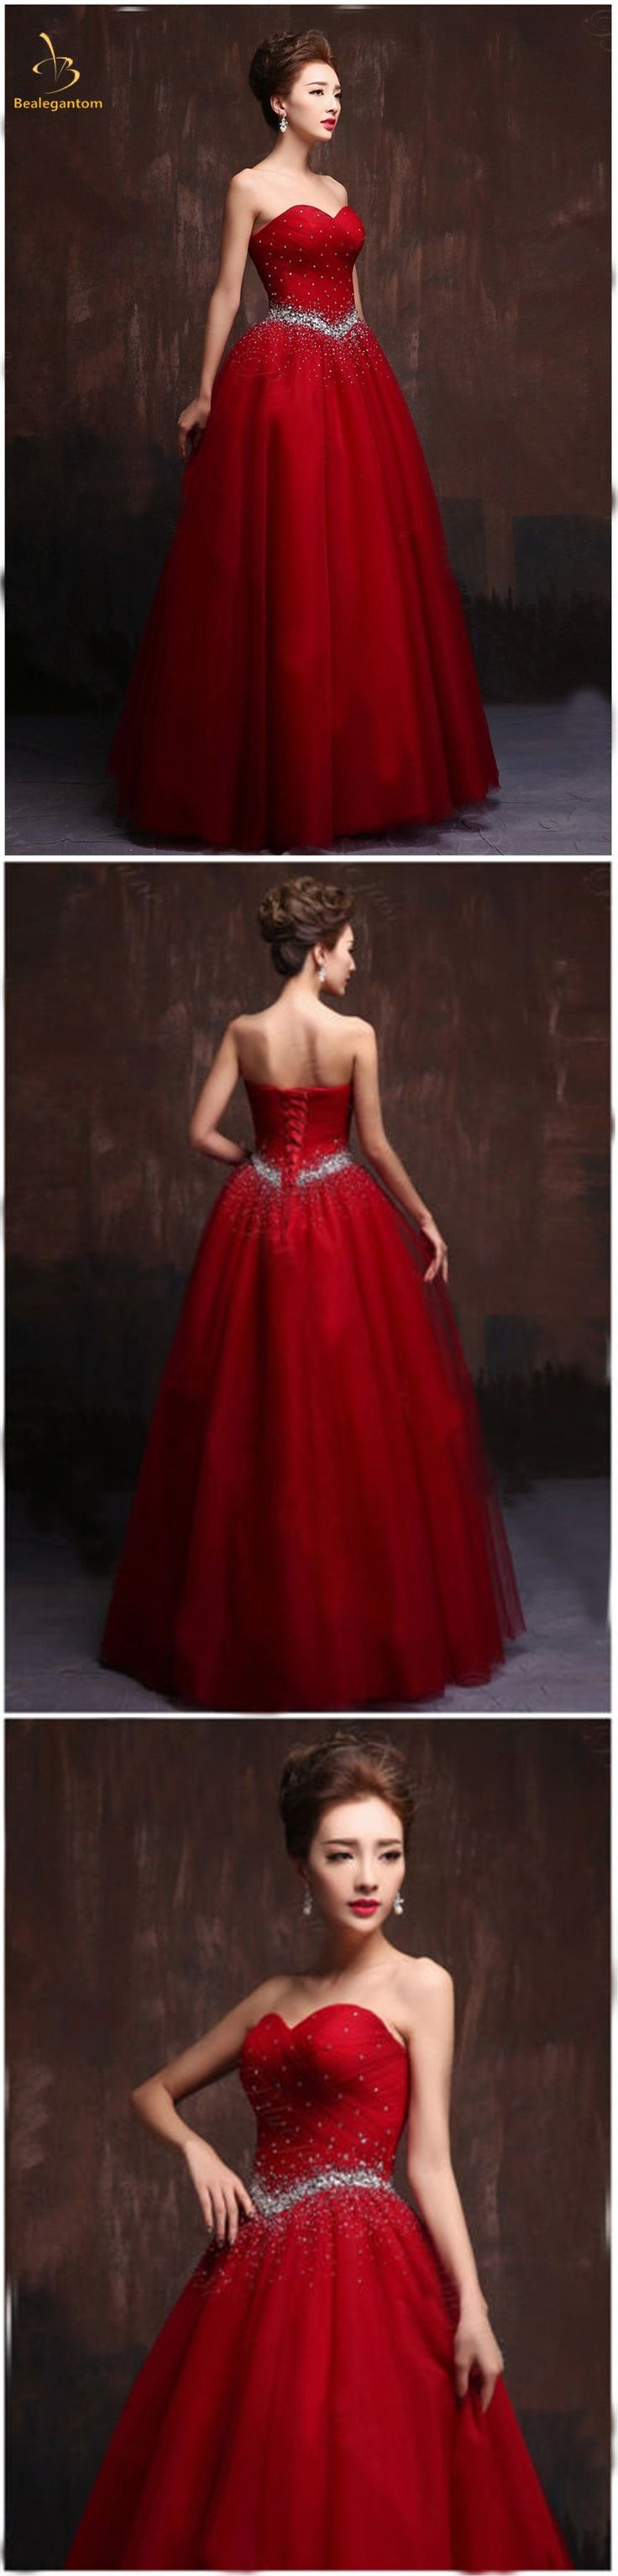 best quinceanera dresses images on pinterest